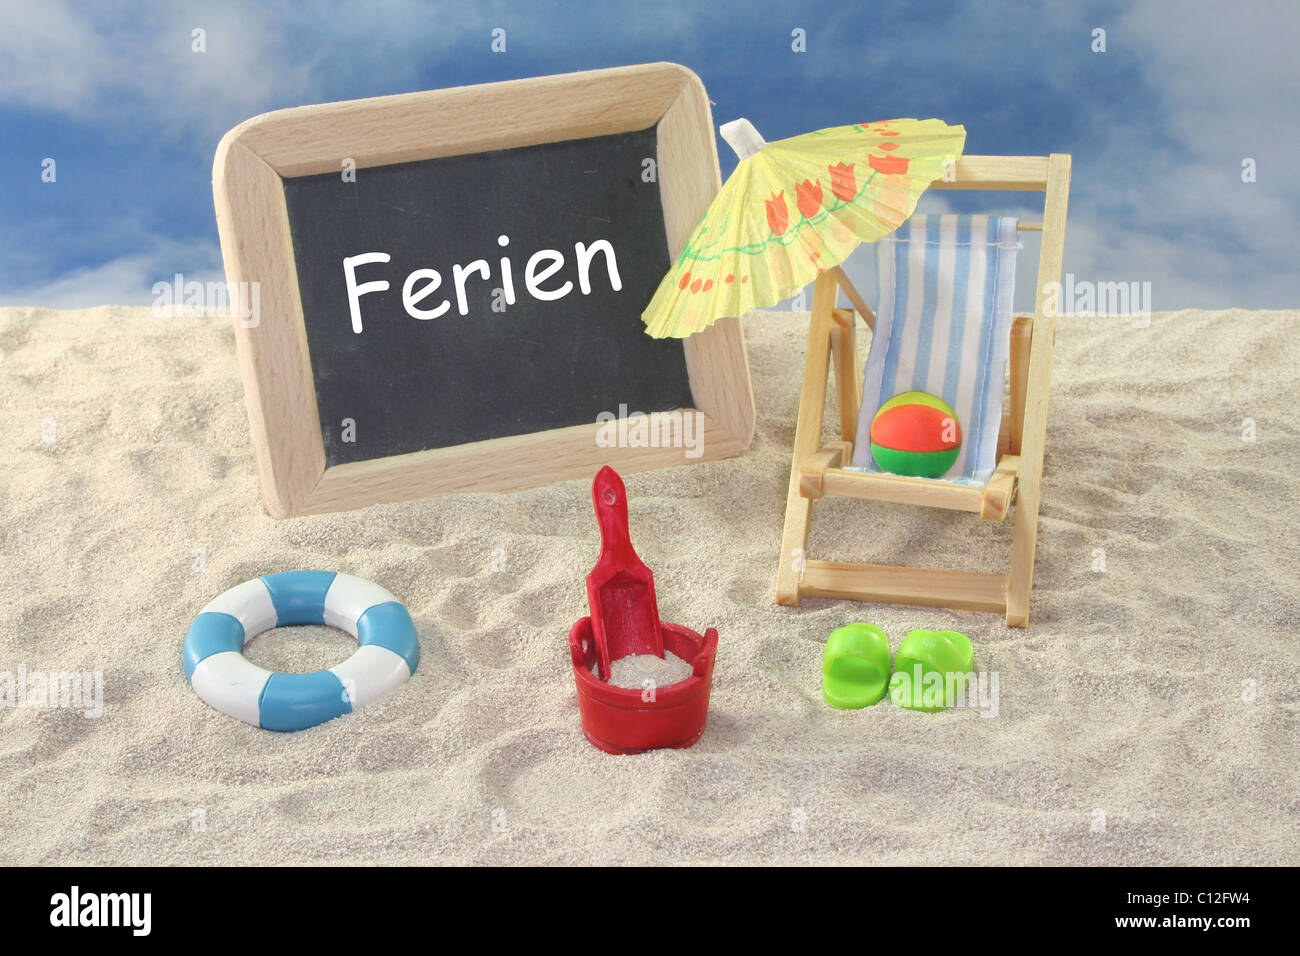 School board and toys on a sandy beach Stock Photo